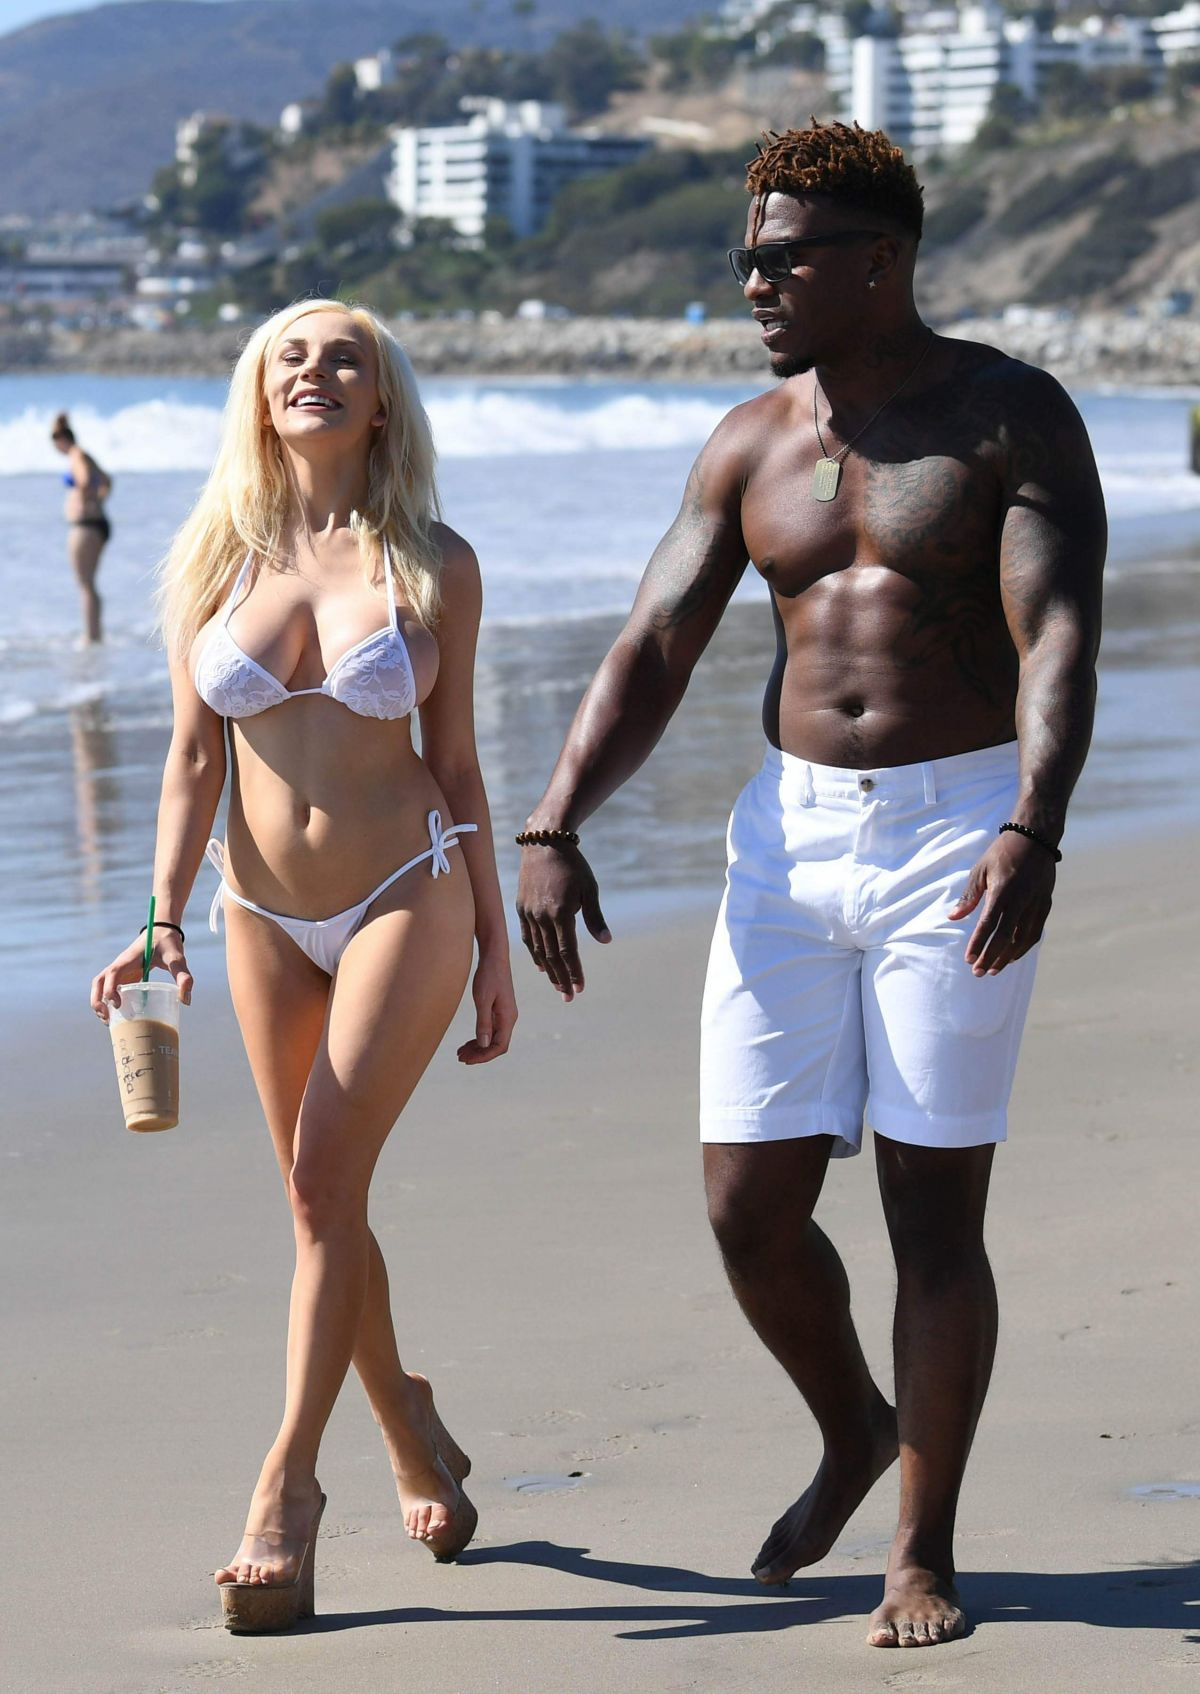 Courtney Stodden in Bikini on the beach in Malibu Pic 6 of 35